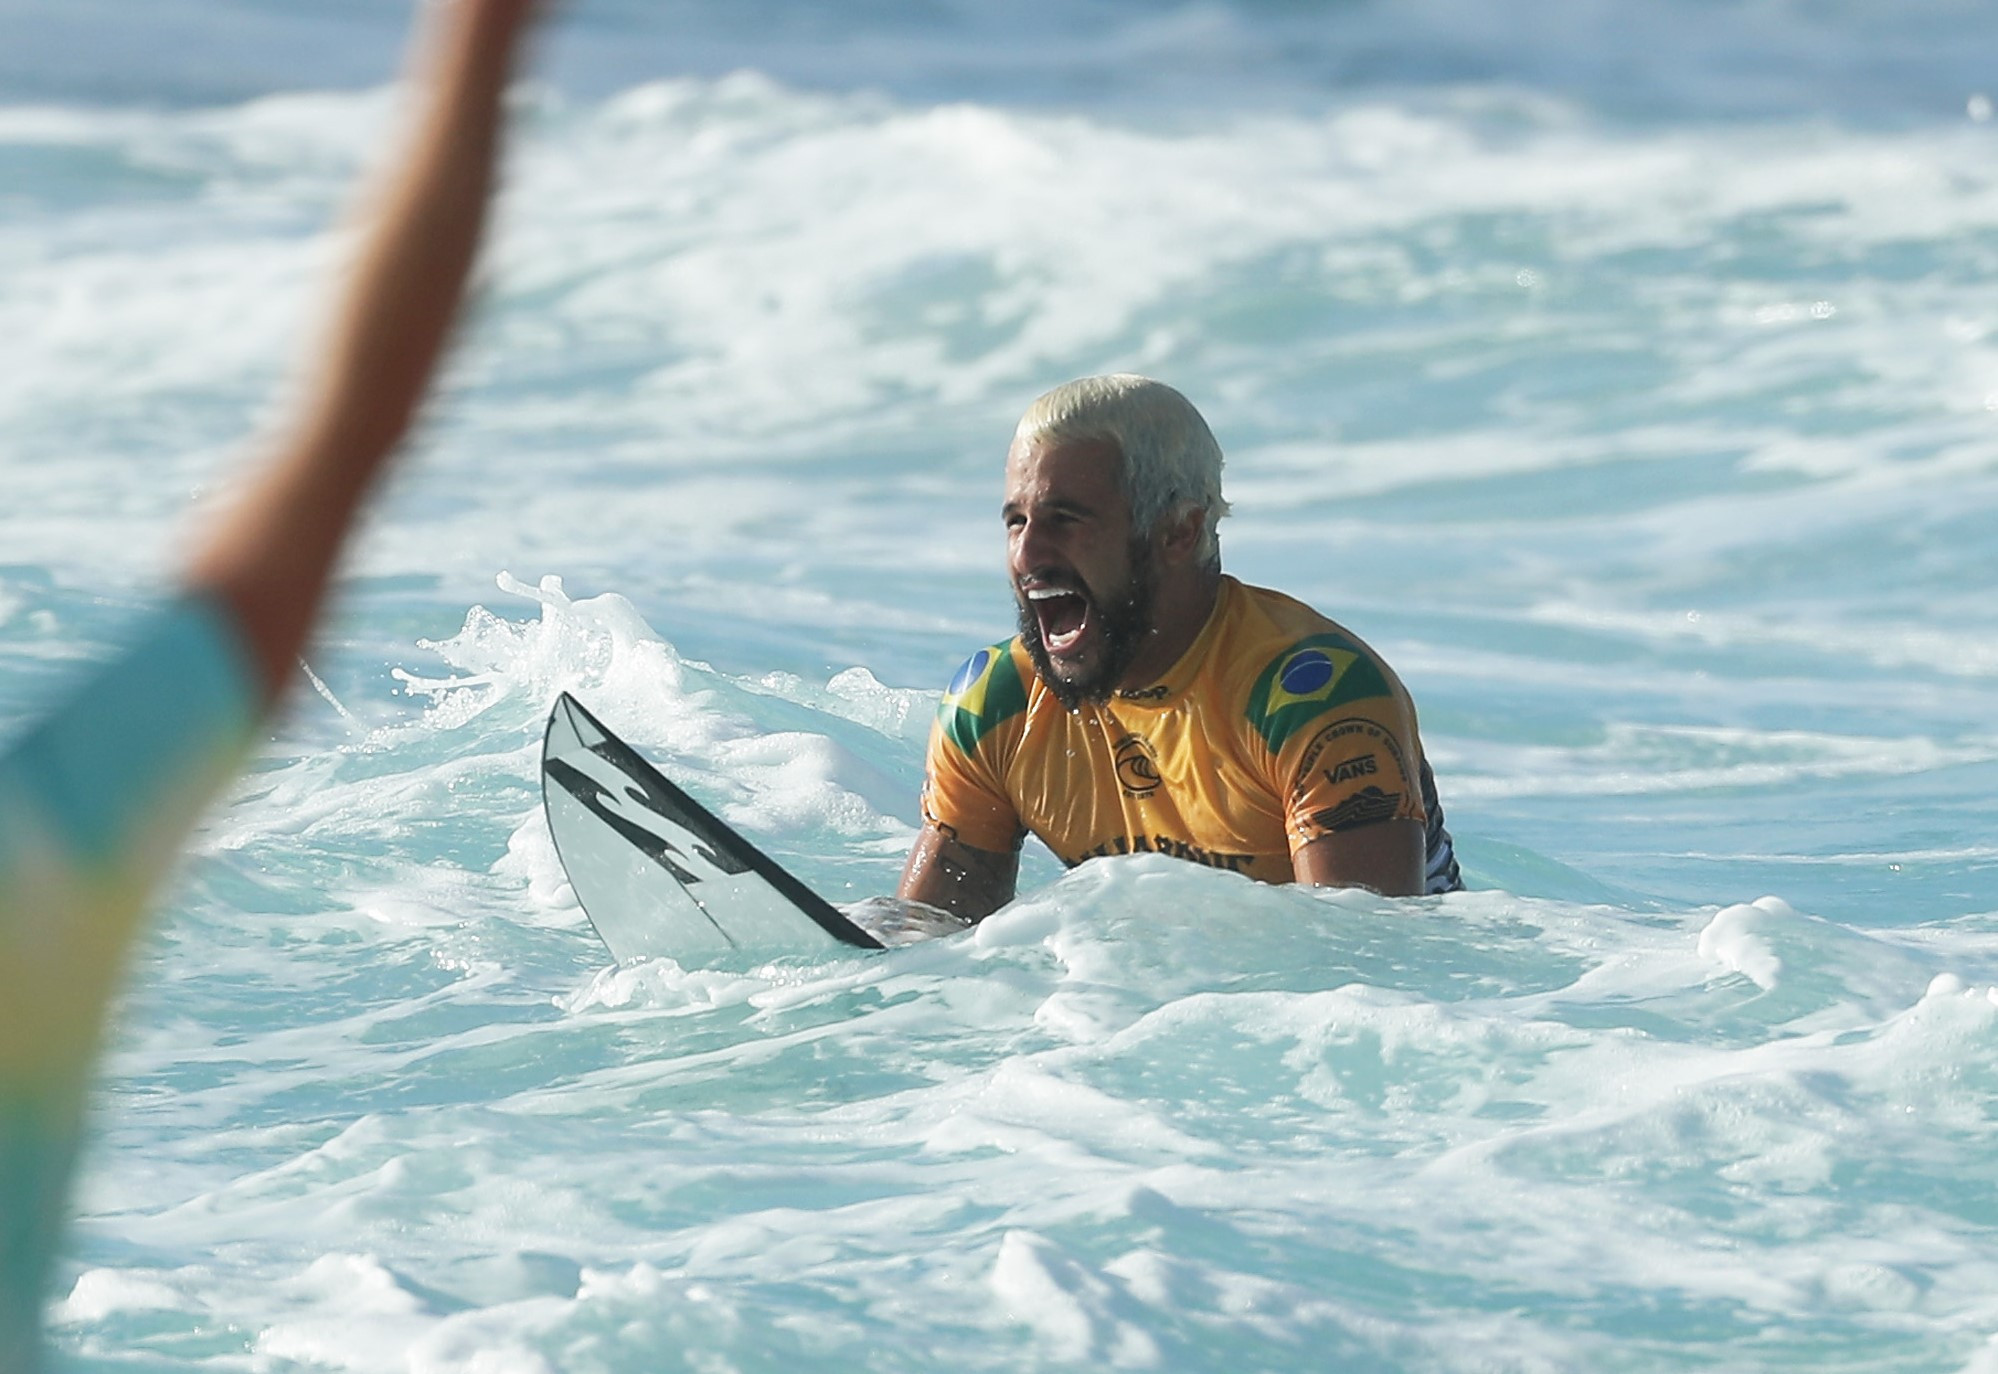 Champion Ferreira knocks out Fanning at World Surf League event in Narrabeen